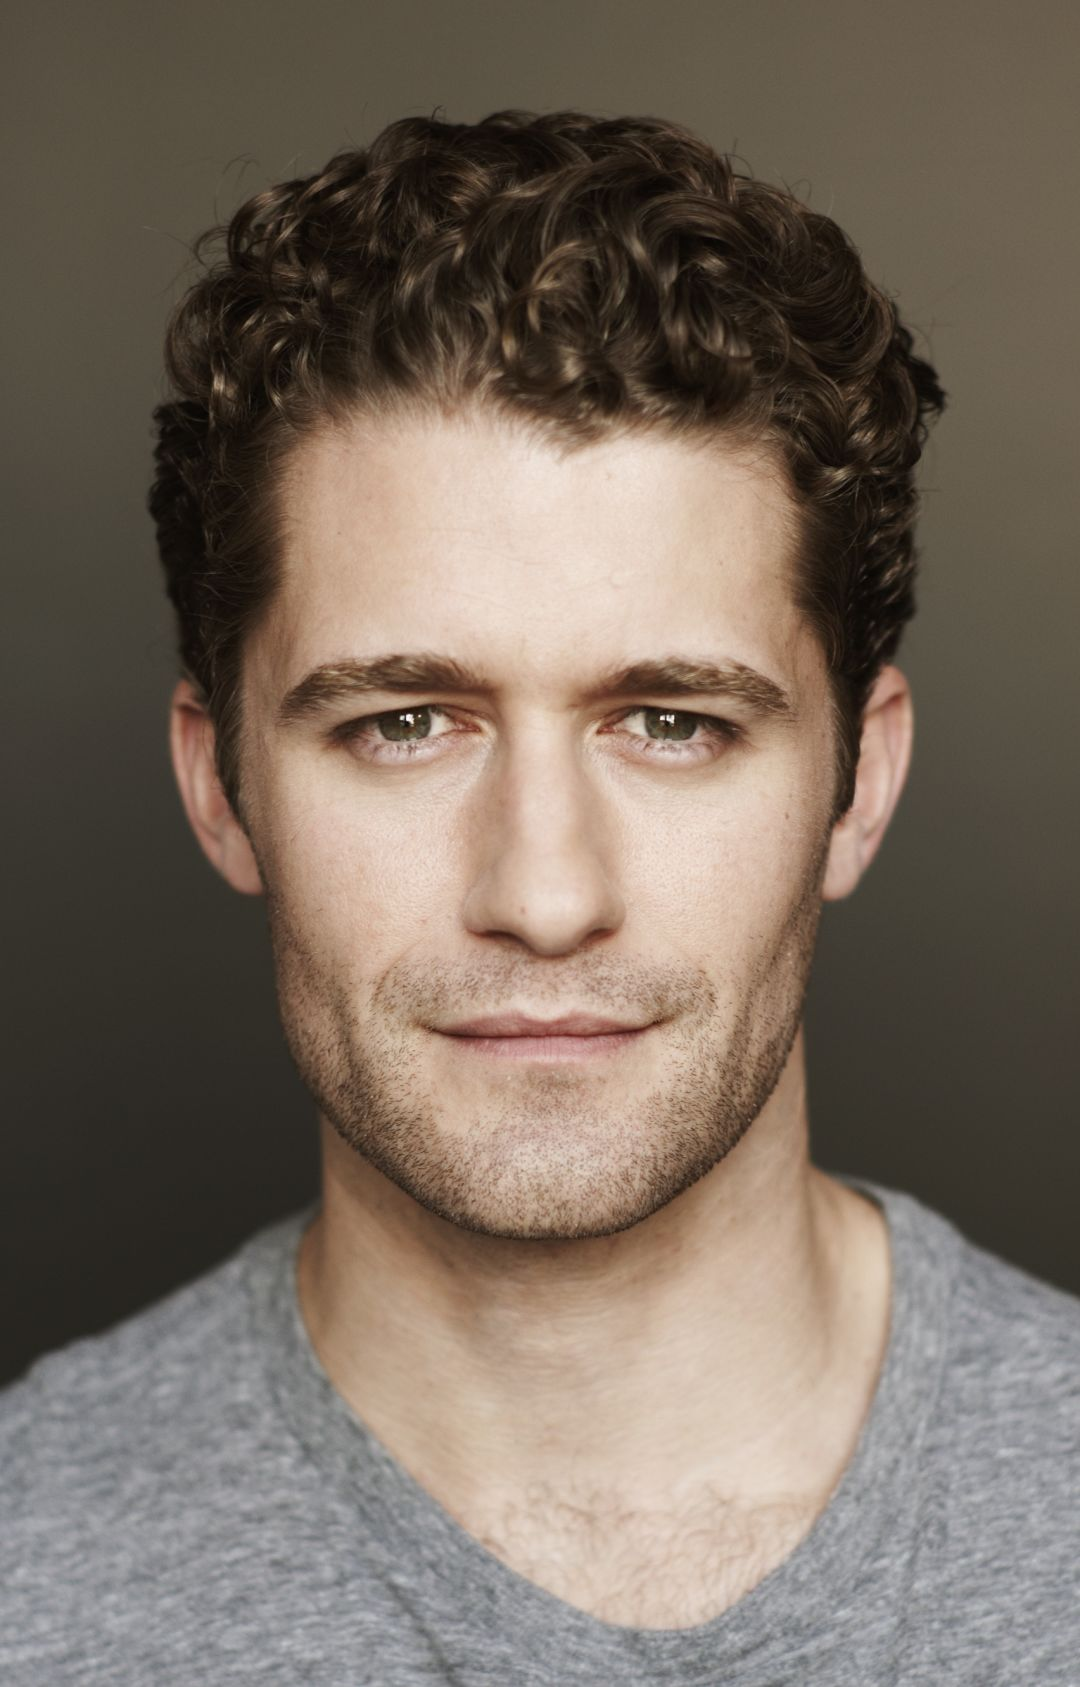 Matthew morrison head shot color iql34u